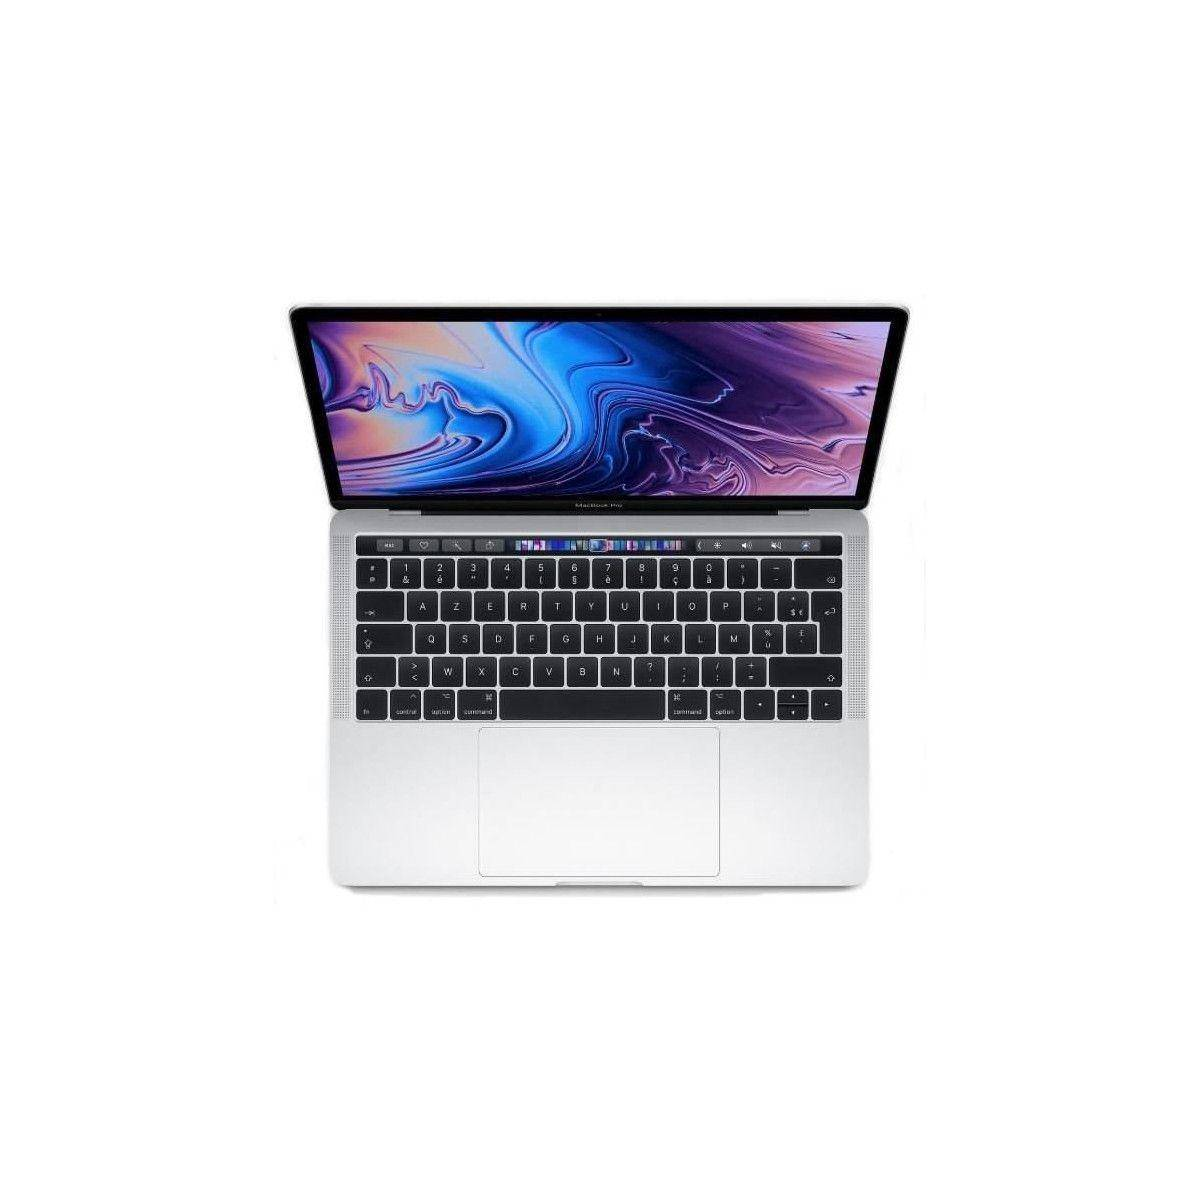 APPLE MacBook Pro MR9V2FN/A - 13,3 pouces Retina avec Touch Bar - Intel Core i5 - RAM 8Go - Stockage 512Go - Argent